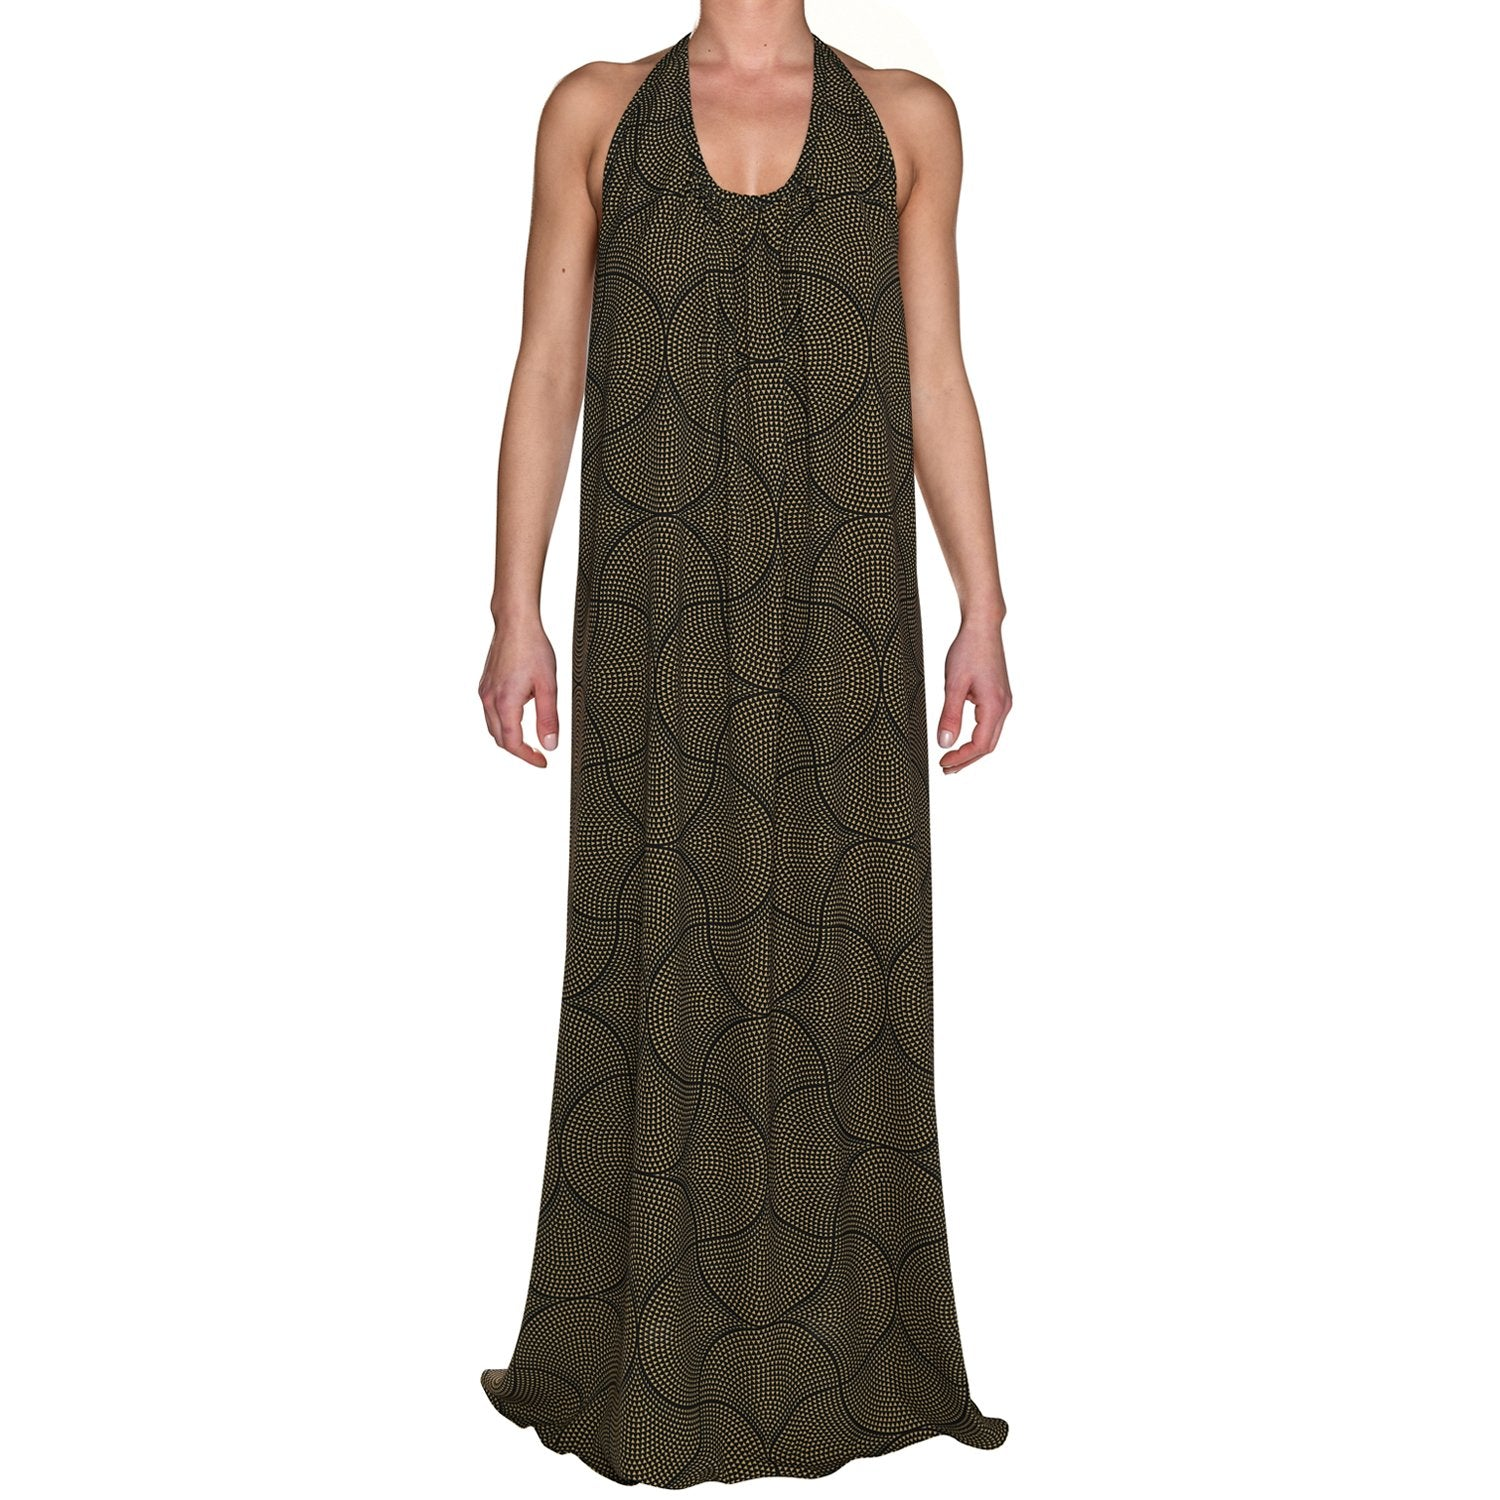 Mosaic Black & Gold Maxi Dress